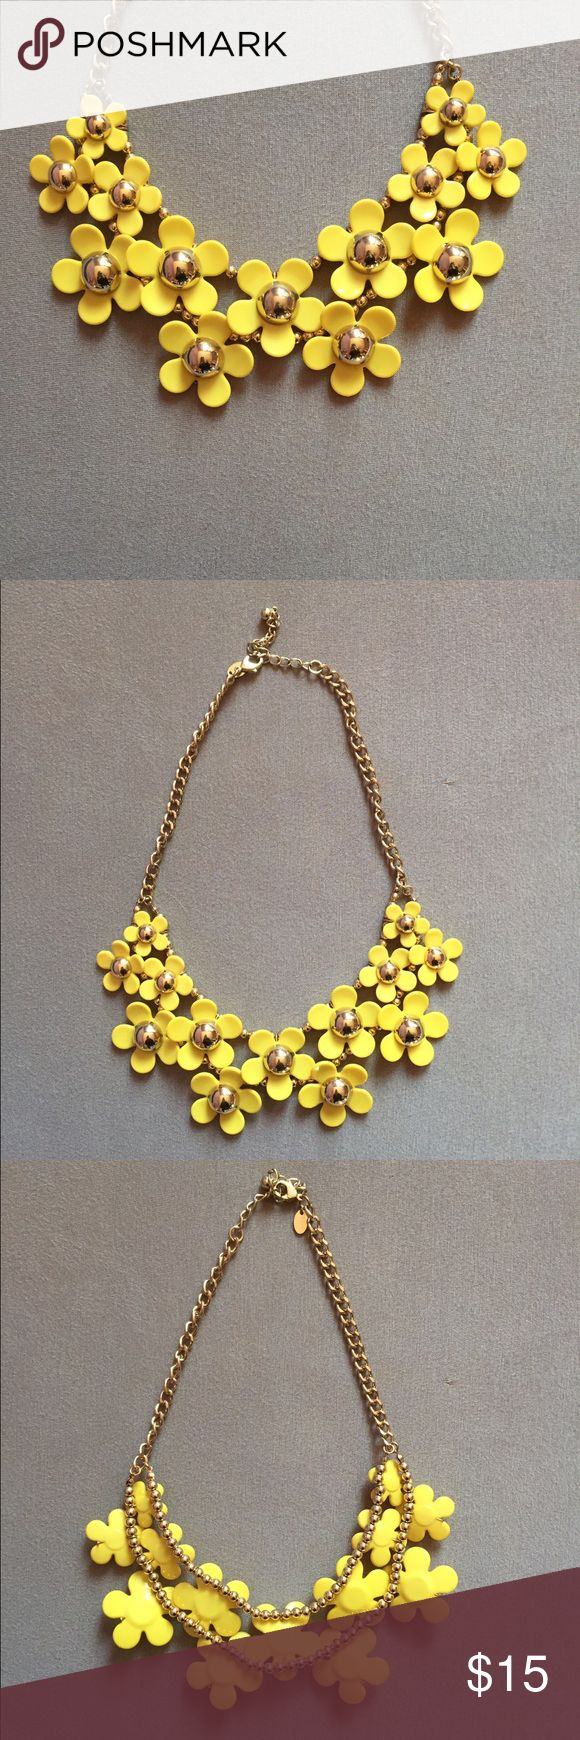 NWOT Yellow and Gold Floral Statement Necklace Gold with yellow Statement necklace with various sized flowers From Charming Charlie Metal with rubber/plastic flower petals no flaws, never worn but no tags  I'm 5 7 and 130lbs- for sizing smoke free home everything comes washed willing to bundle at 15% off don't like the price? offer! ask questions! Charming Charlie Jewelry Necklaces